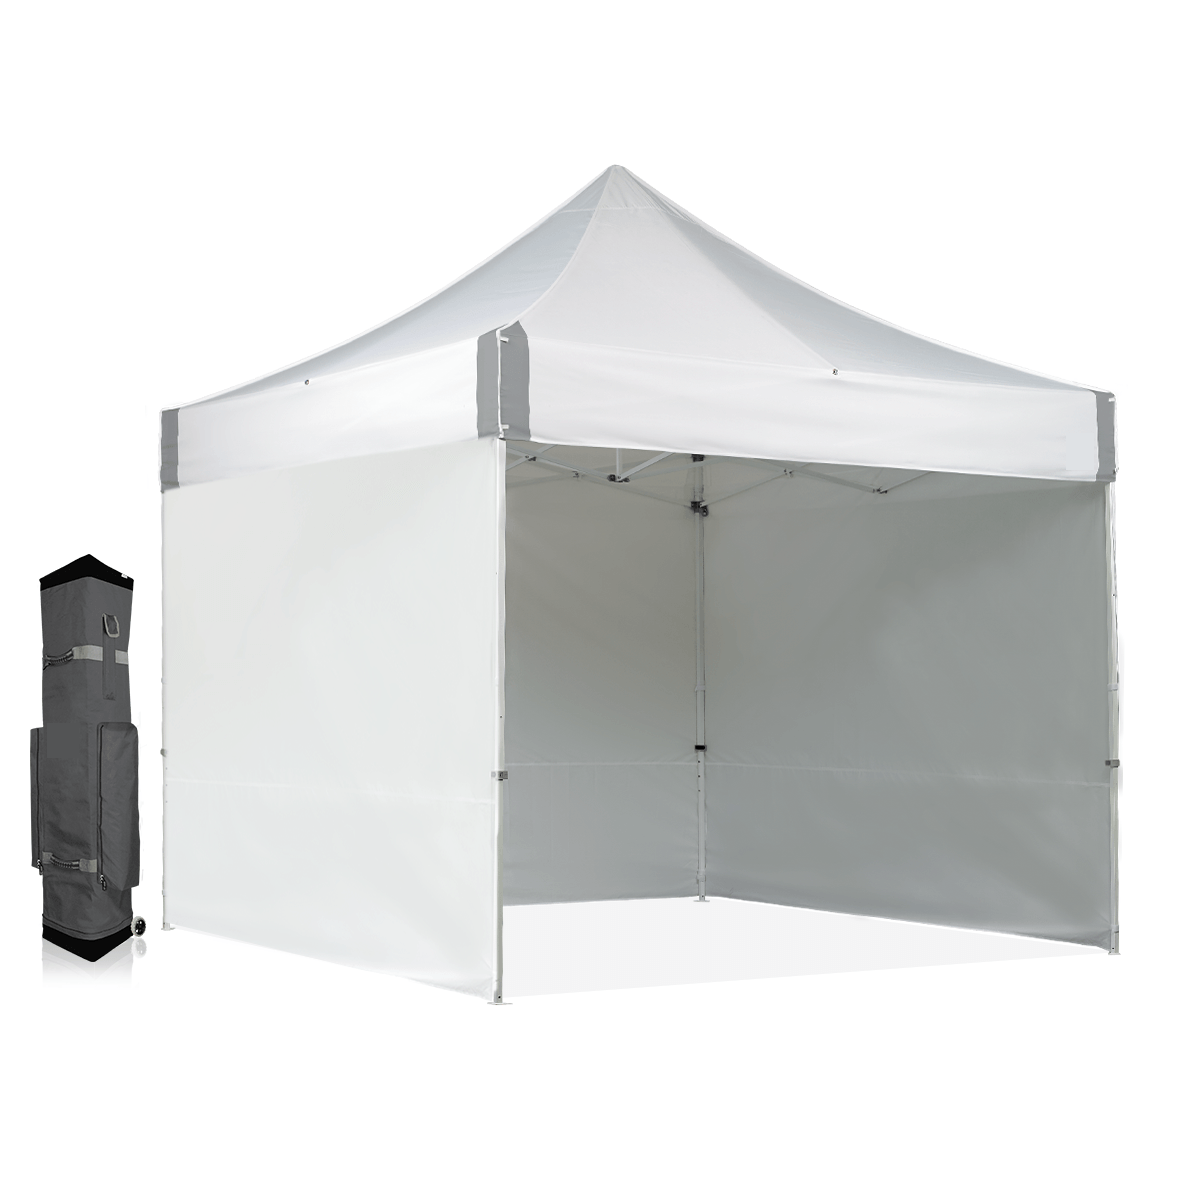 Medical Shelter Tent Value Pack